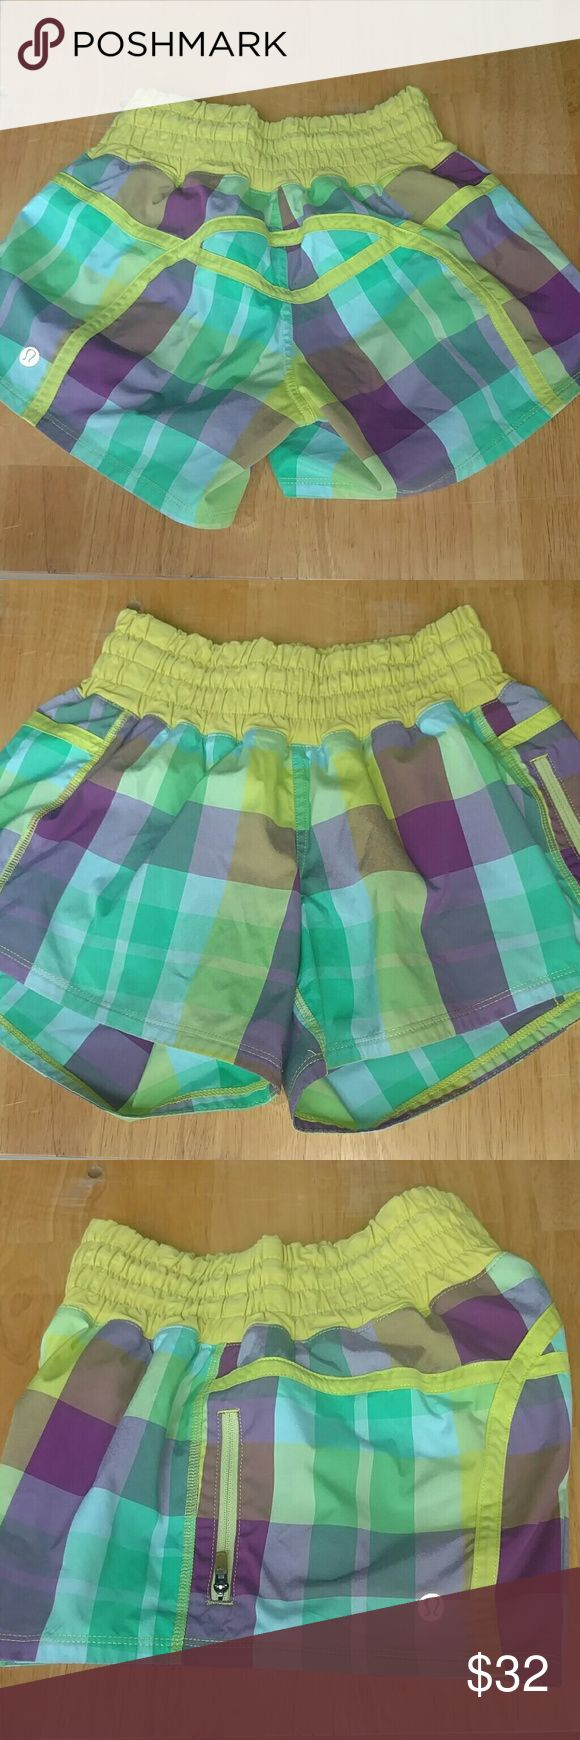 Lululemon Shorts In great condition lime green yellow band and plaid shorties lululemon athletica Shorts